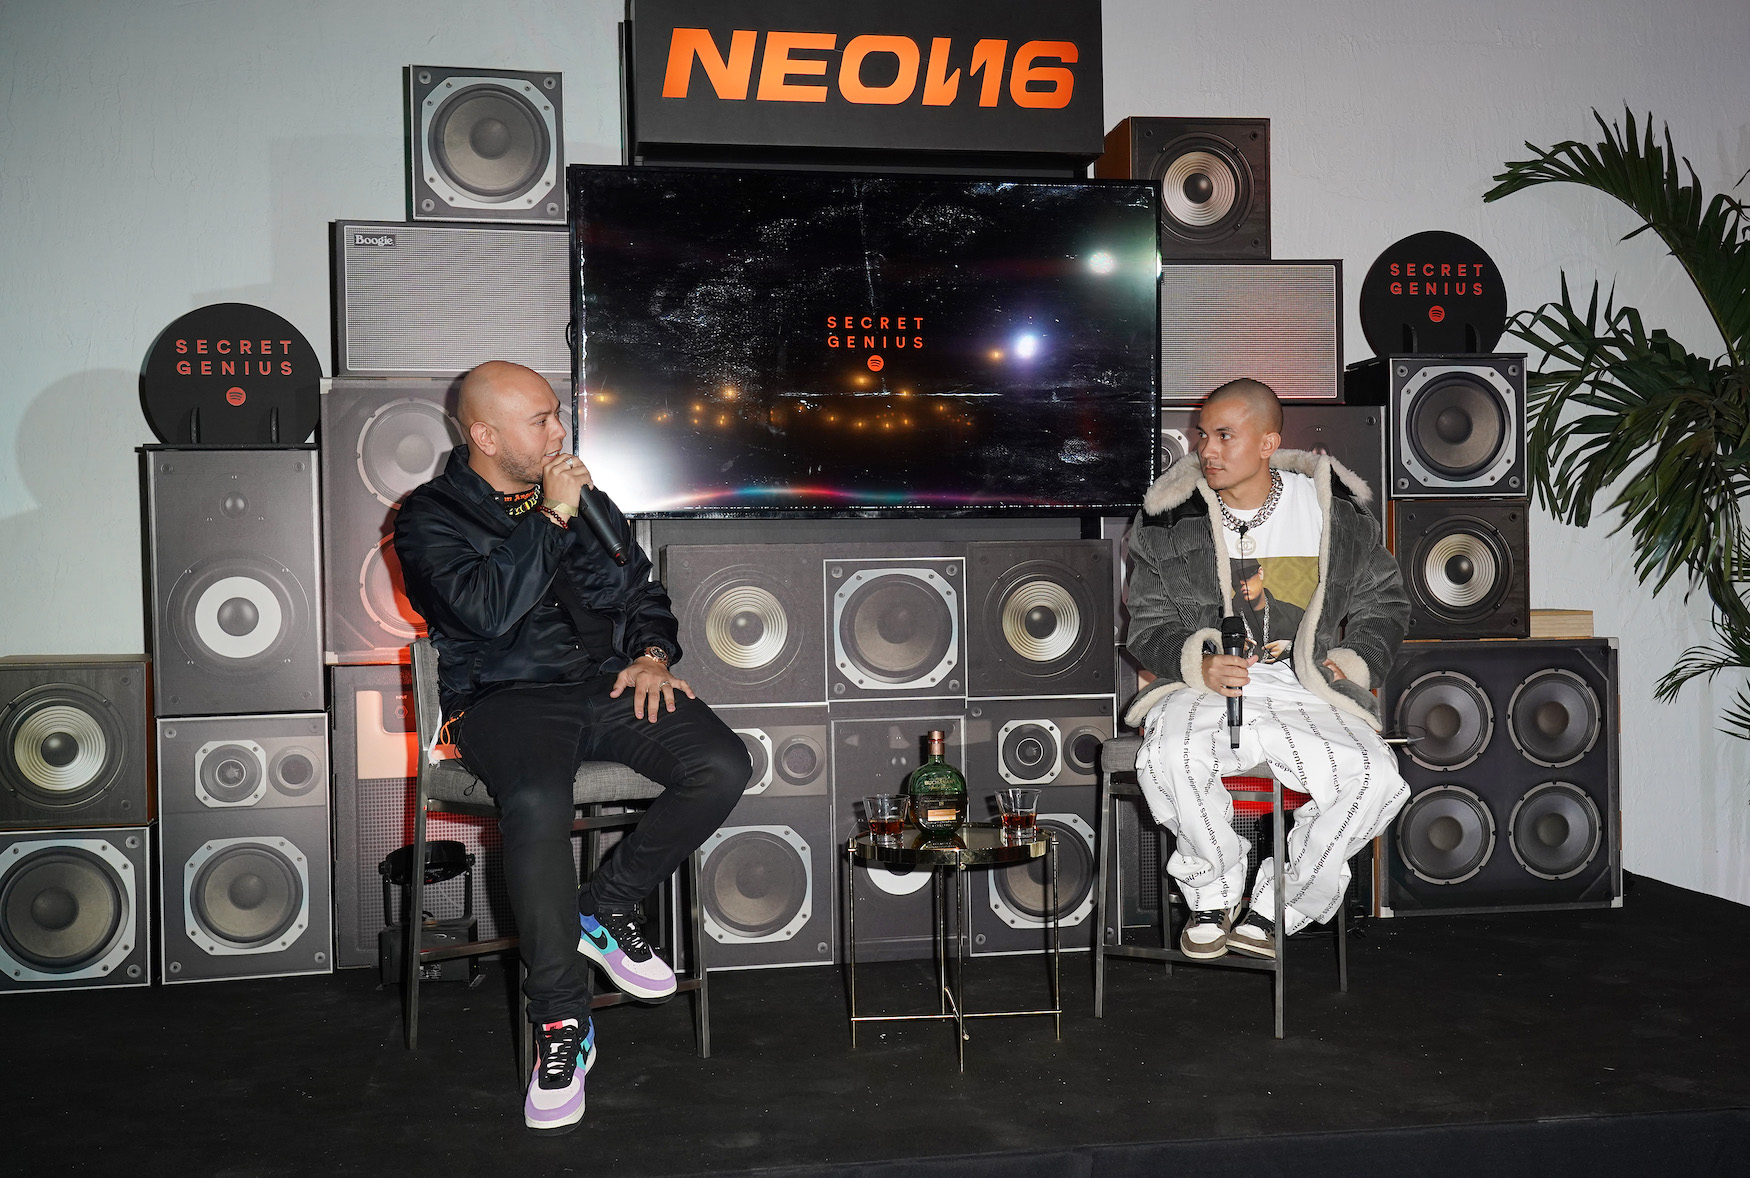 tainy-and-lex-borrero-secret-genius-panel-at-the-kids-that-grew-up-on-reggaeton-presented-by-neon16-buchanans-whisky-and-spotify-genius_12.4.19_photo-credit-getty-images.jpg